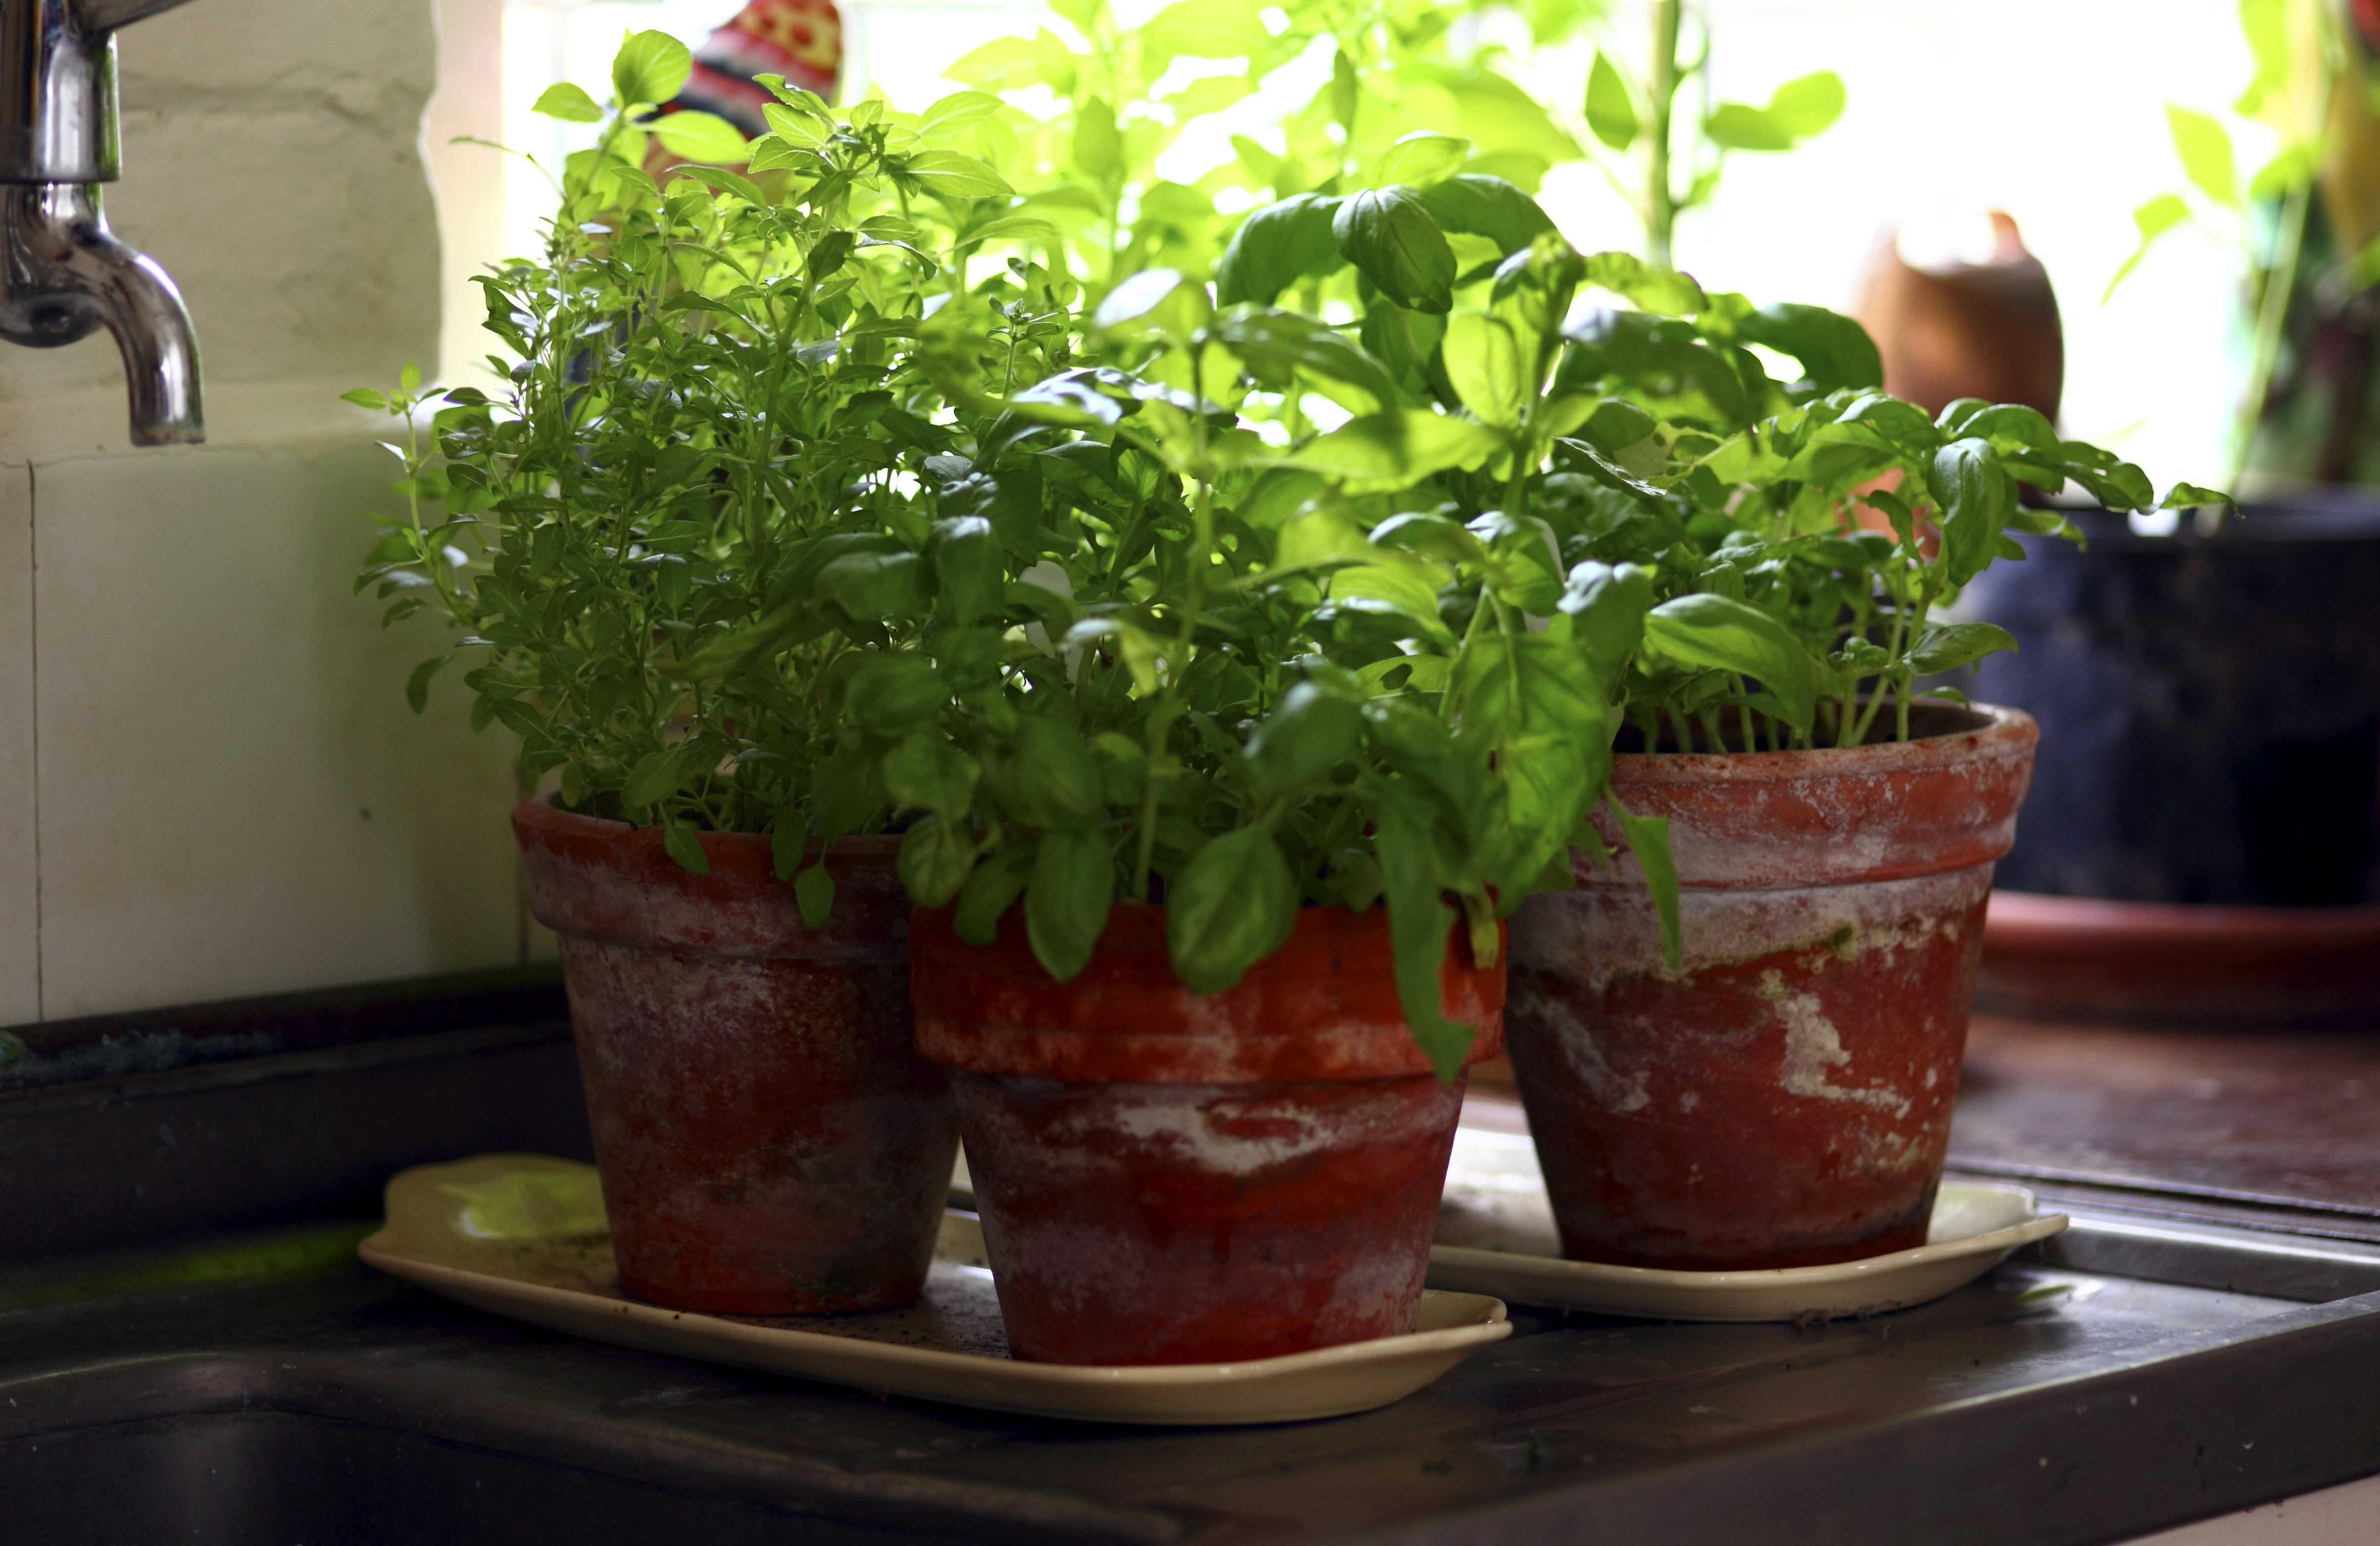 Basil plants growing in the kitchen